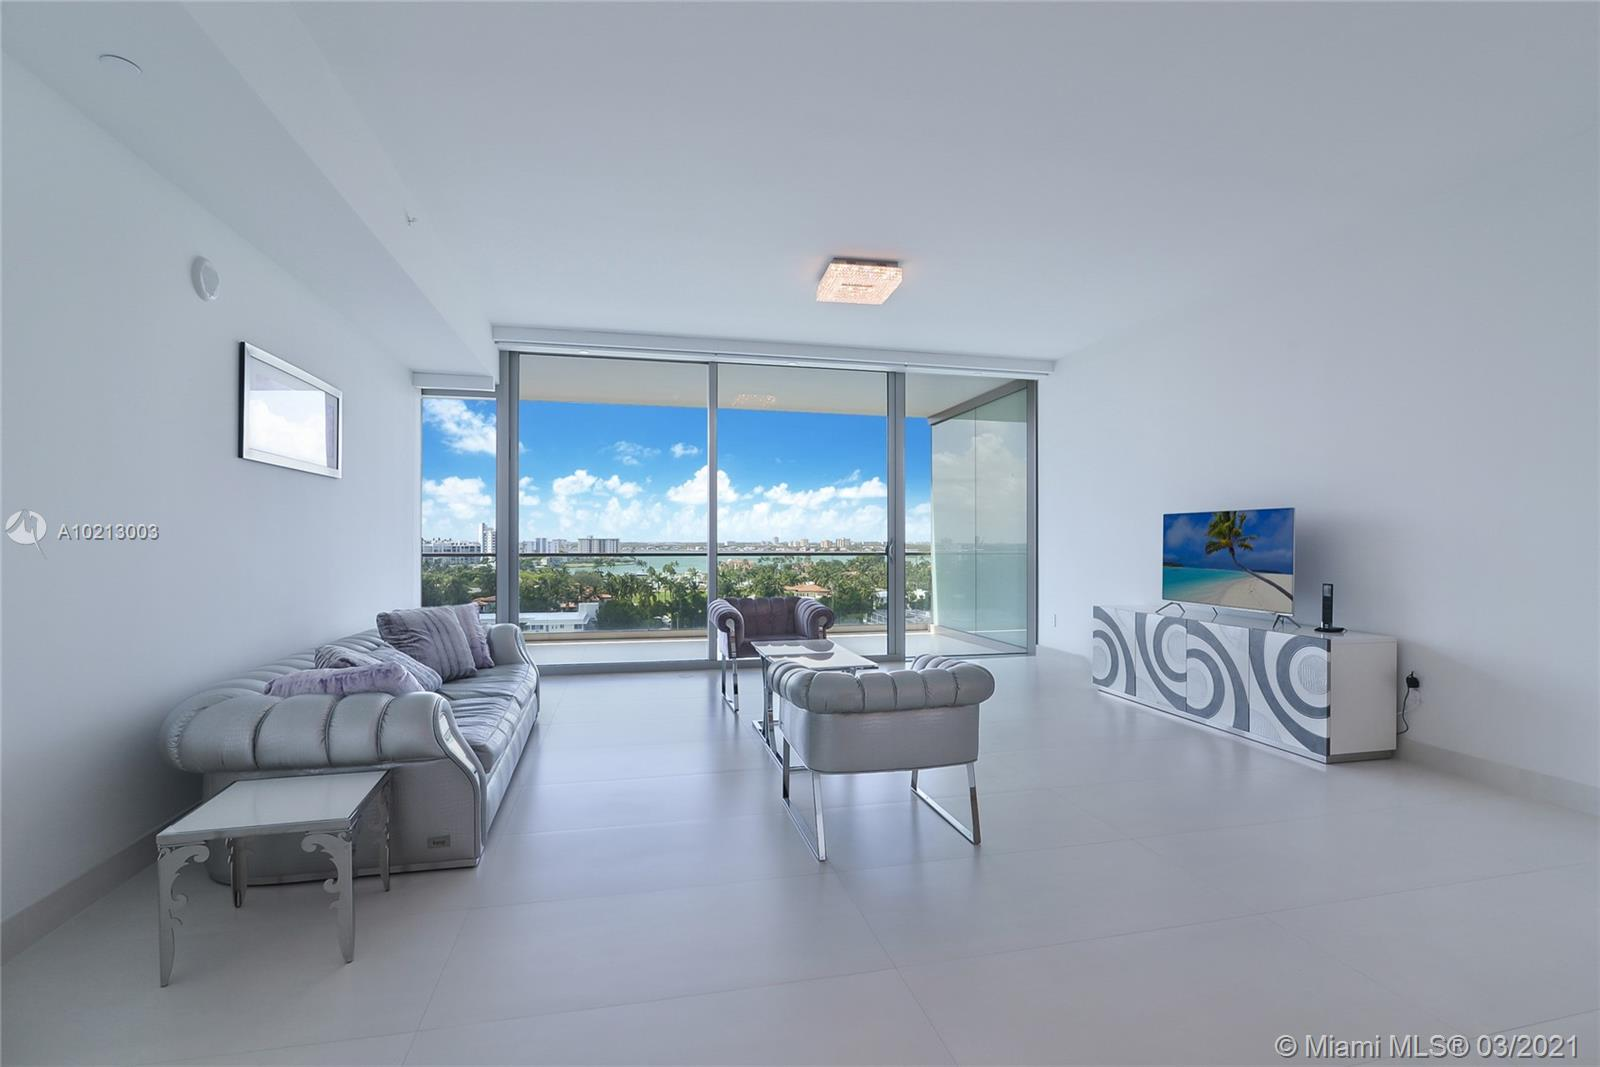 PANORAMIC BAY VIEWS / AMAZING SUNSETS / 1 BED/ 1.5 BATH/ ITALIAN Porcelain floors throughout/ remote controlled window treatments/ Italian closets/ State of the art amenities: 2 PROFESSIONAL  Tennis Courts / Restaurant/Bar / Spa  /Fitness center / 2 swimming pools / Beach & Pool Service / Movie Theater / Social Room / Kids room / Concierge/ Valet / 24 hours Security.